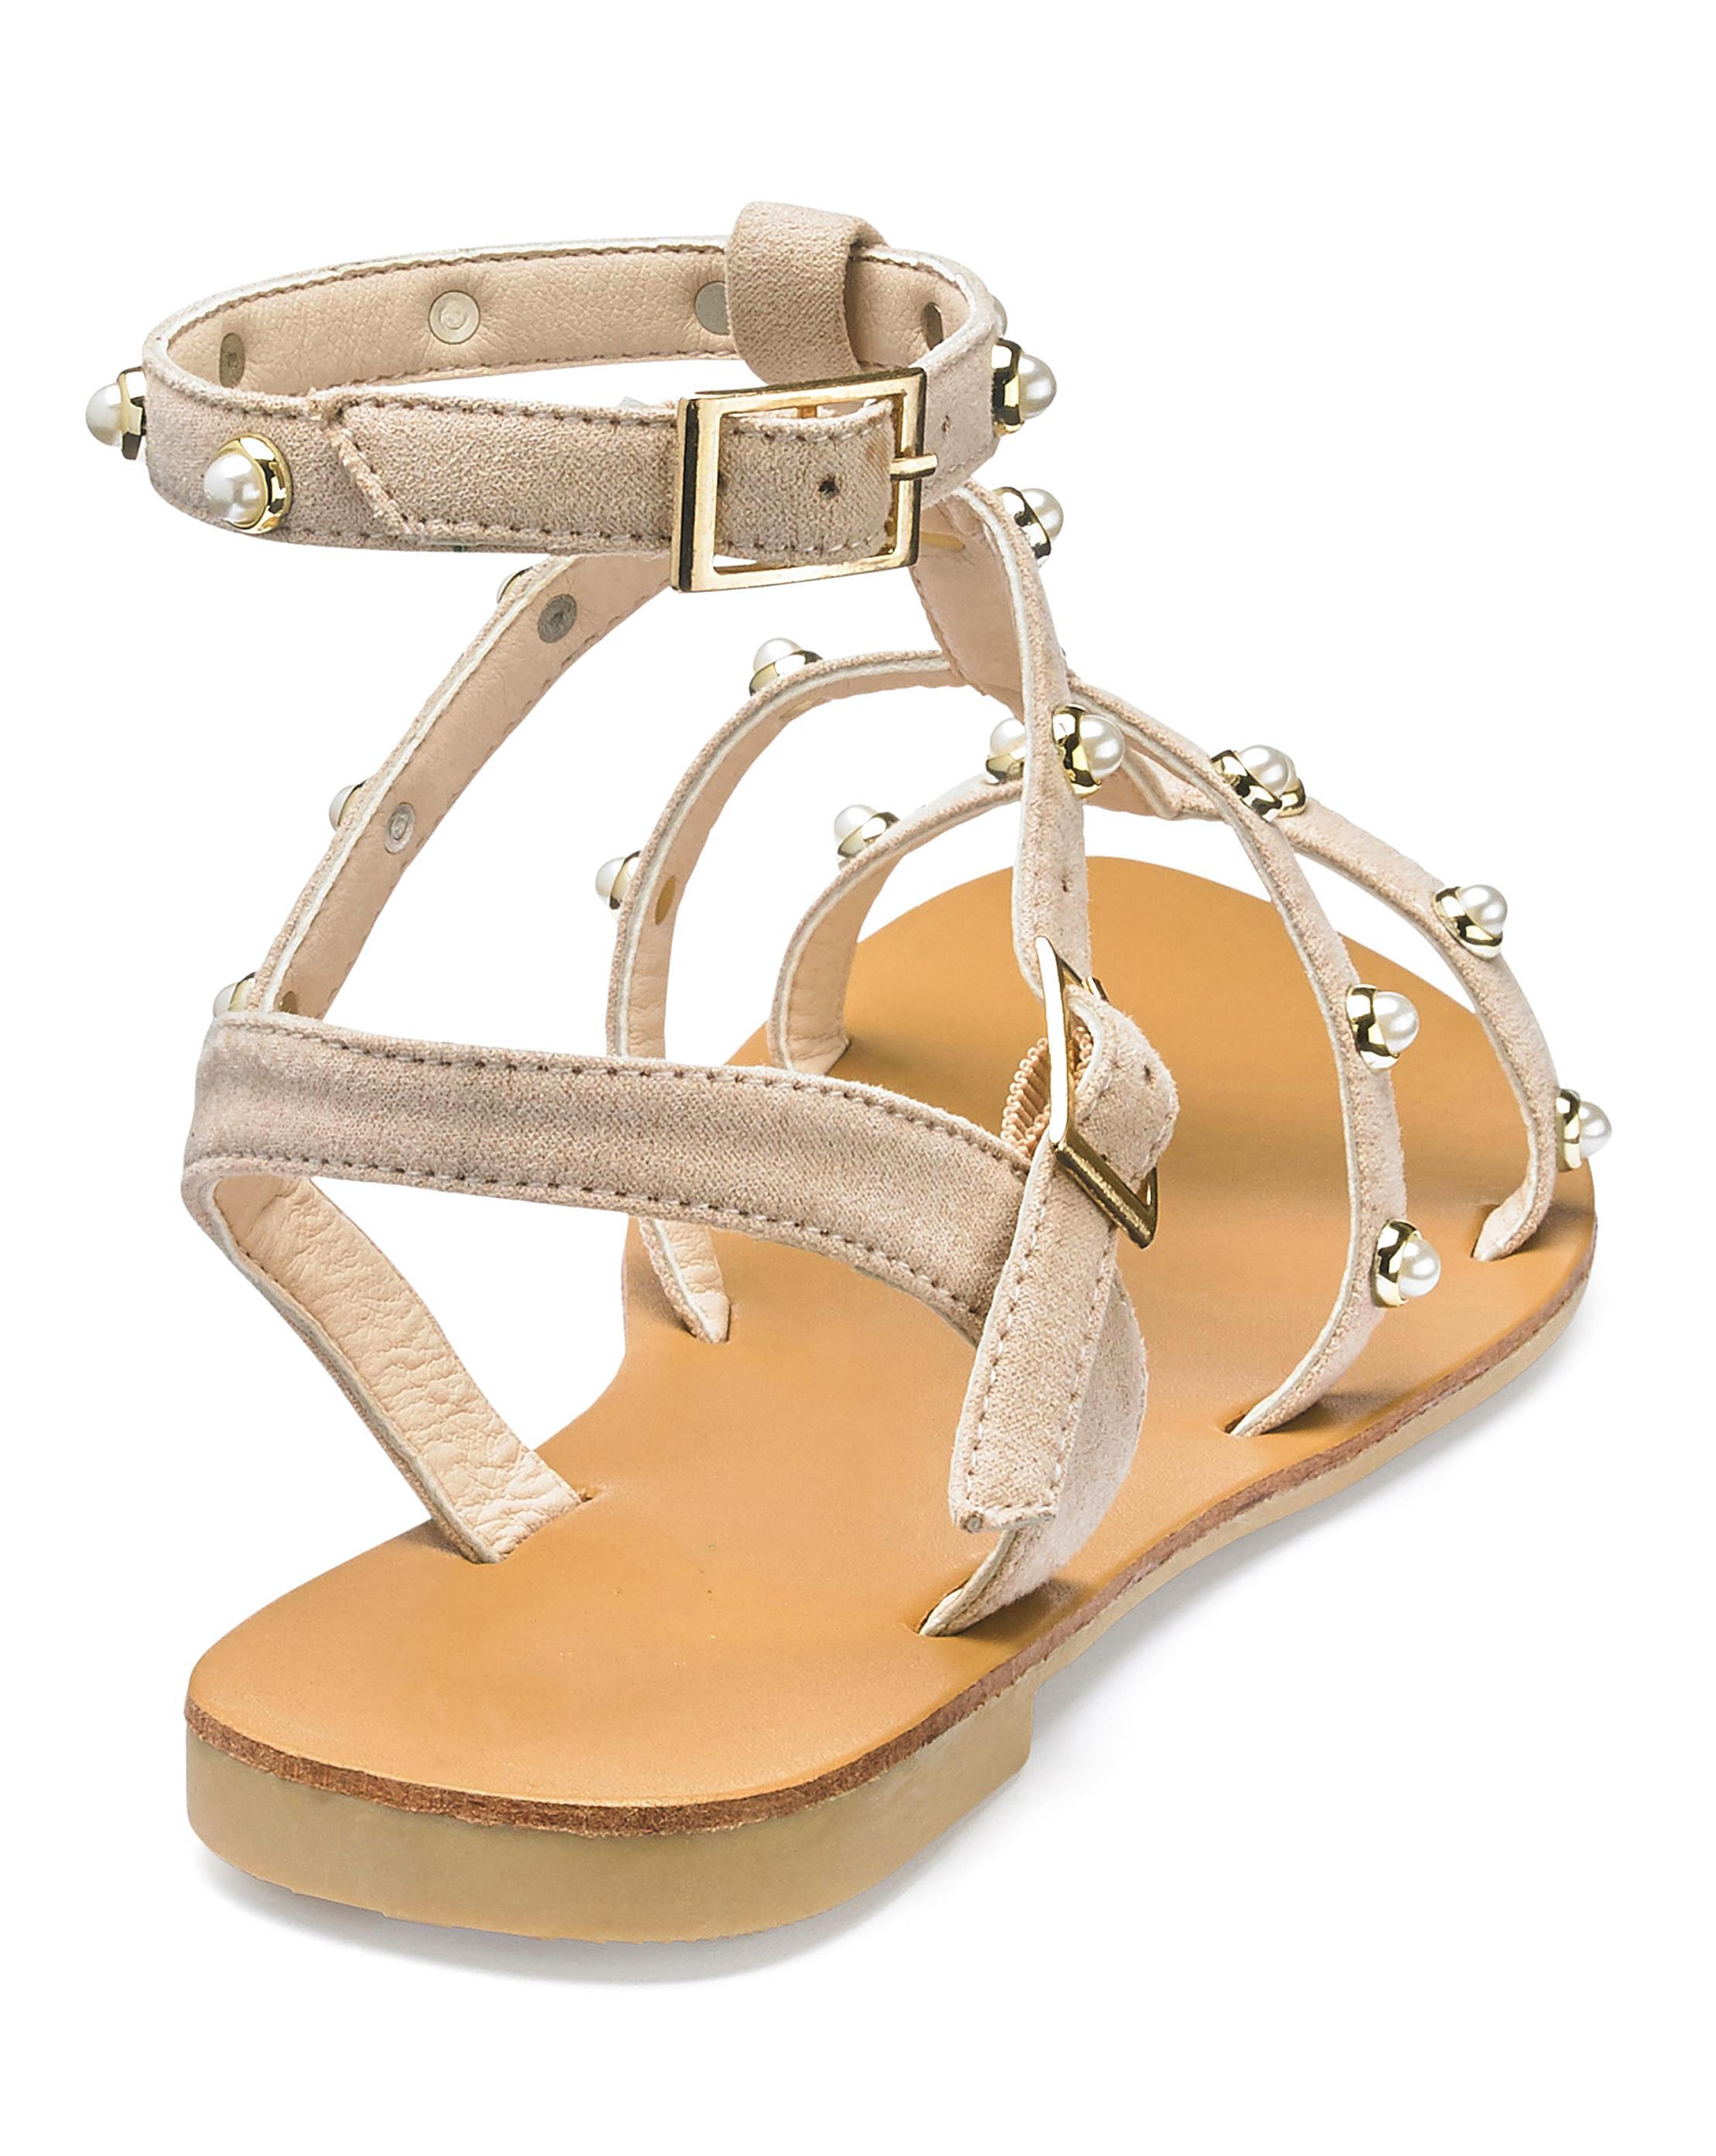 for sale cheap price from china Haley Gladiator Sandals cheap newest 2woiC0